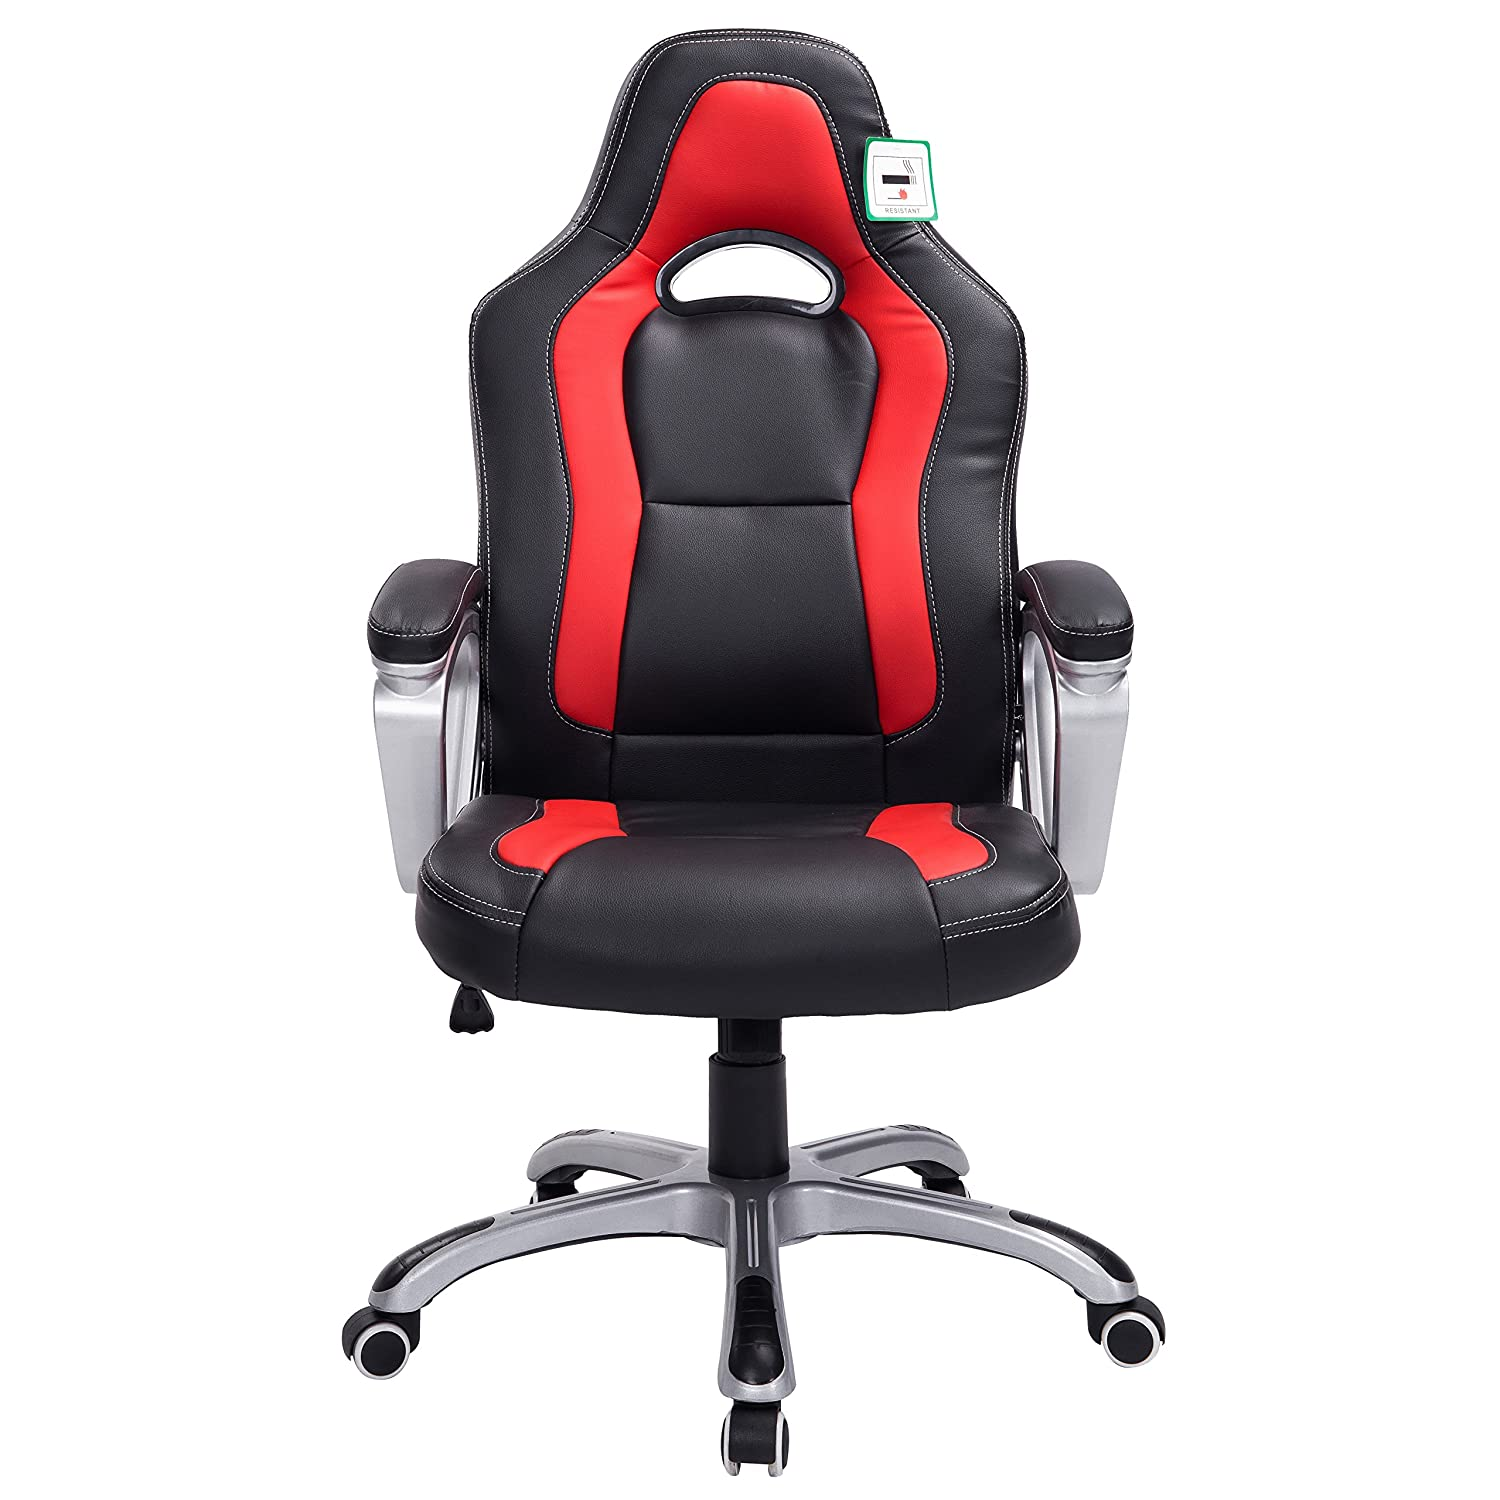 red chair ip racing office desk com walmart bucket executive style pu leather seat